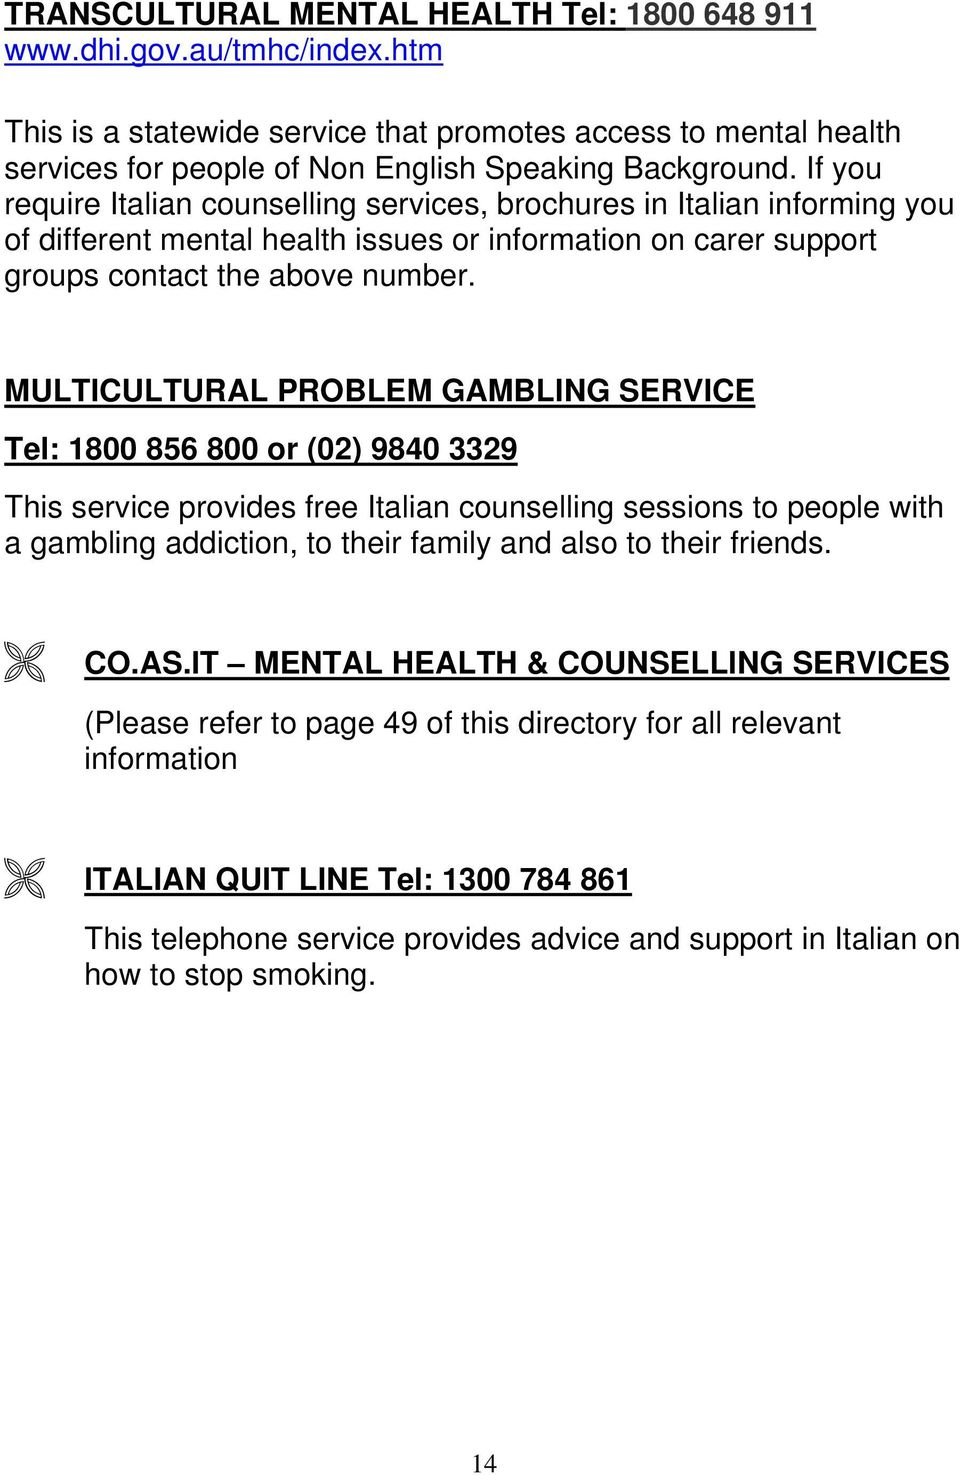 MULTICULTURAL PROBLEM GAMBLING SERVICE Tel: 1800 856 800 or (02) 9840 3329 This service provides free Italian counselling sessions to people with a gambling addiction, to their family and also to